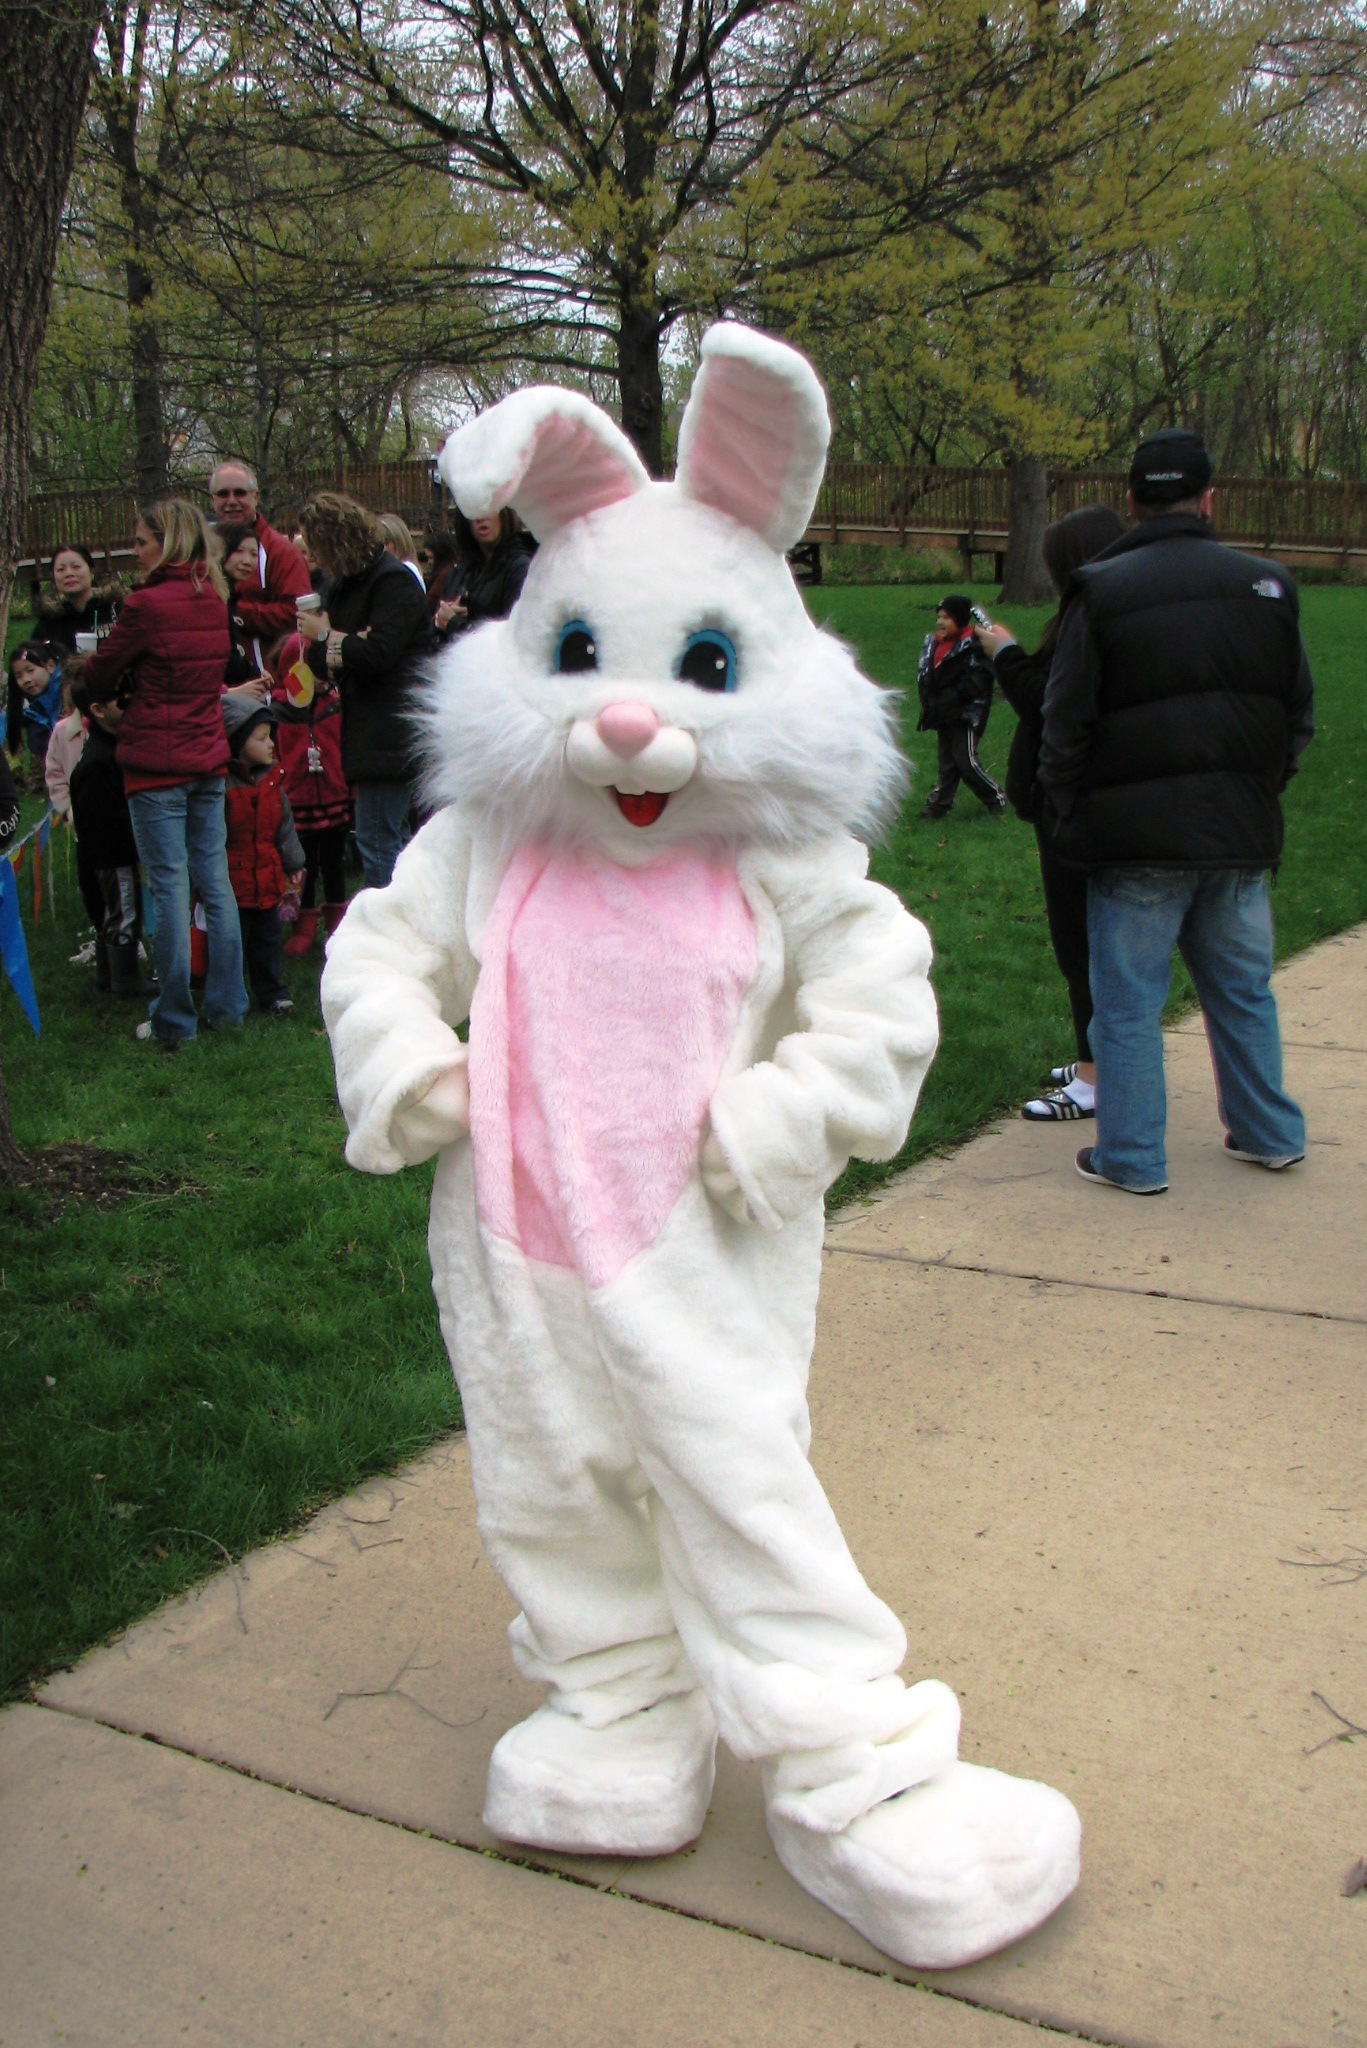 Man Dressed as Easter Bunny